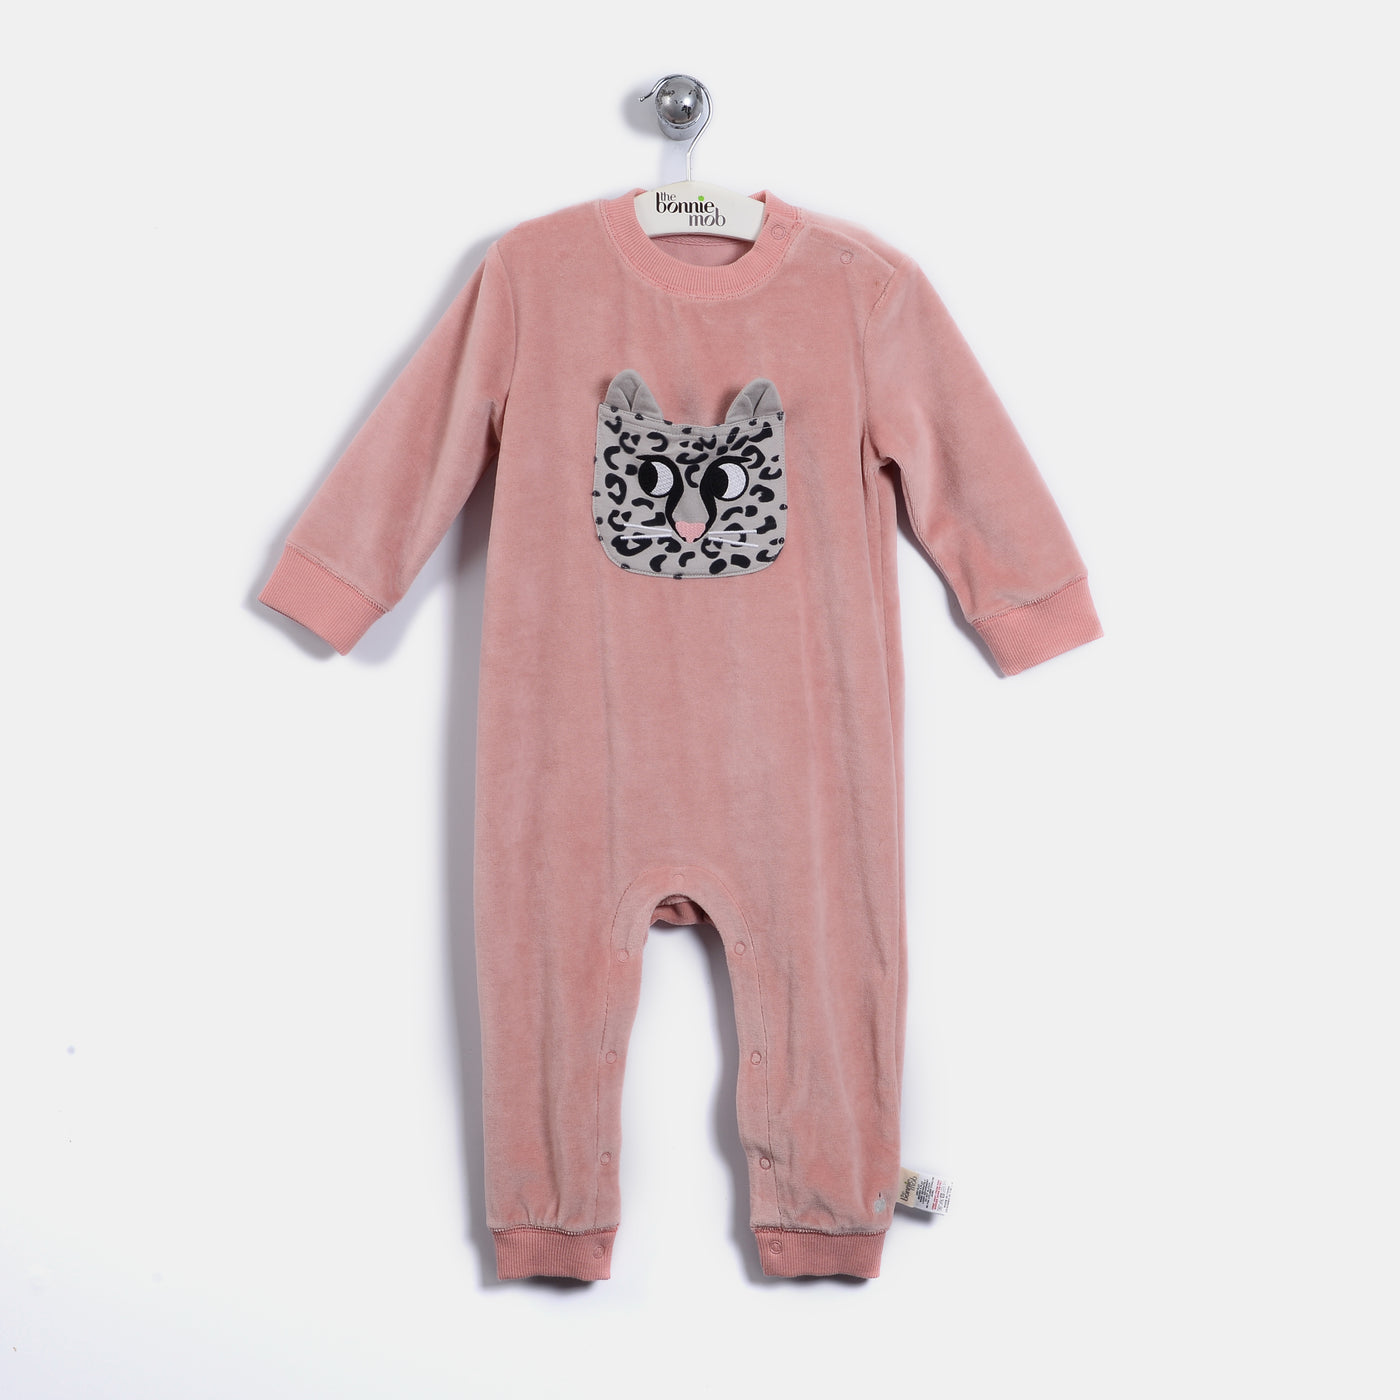 L-LEO - Leopard Pocket Playsuit - Baby Girl - Dusty pink